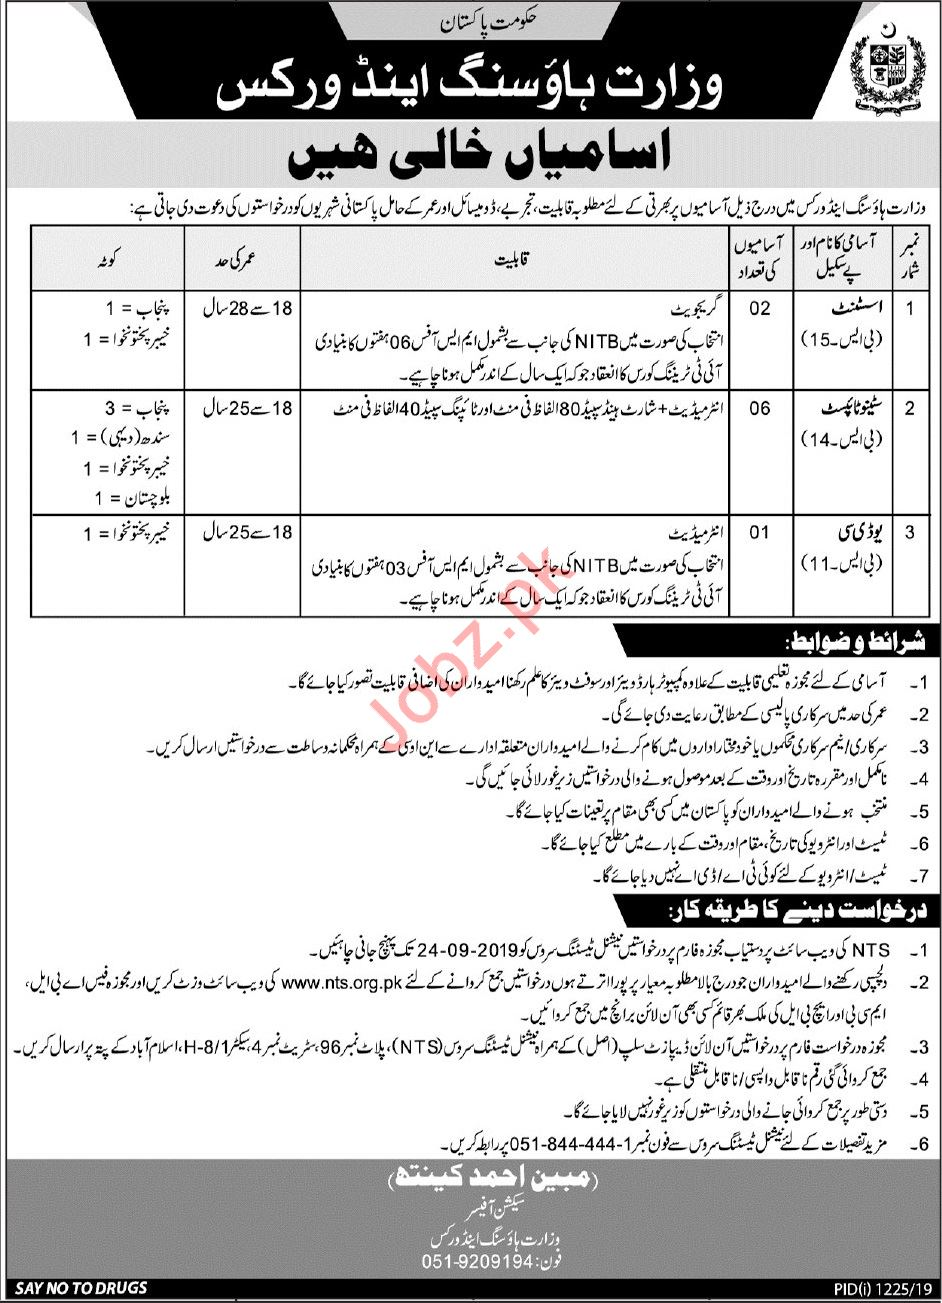 Ministry of Housing and Works Jobs 2019 via NTS 2019 Job